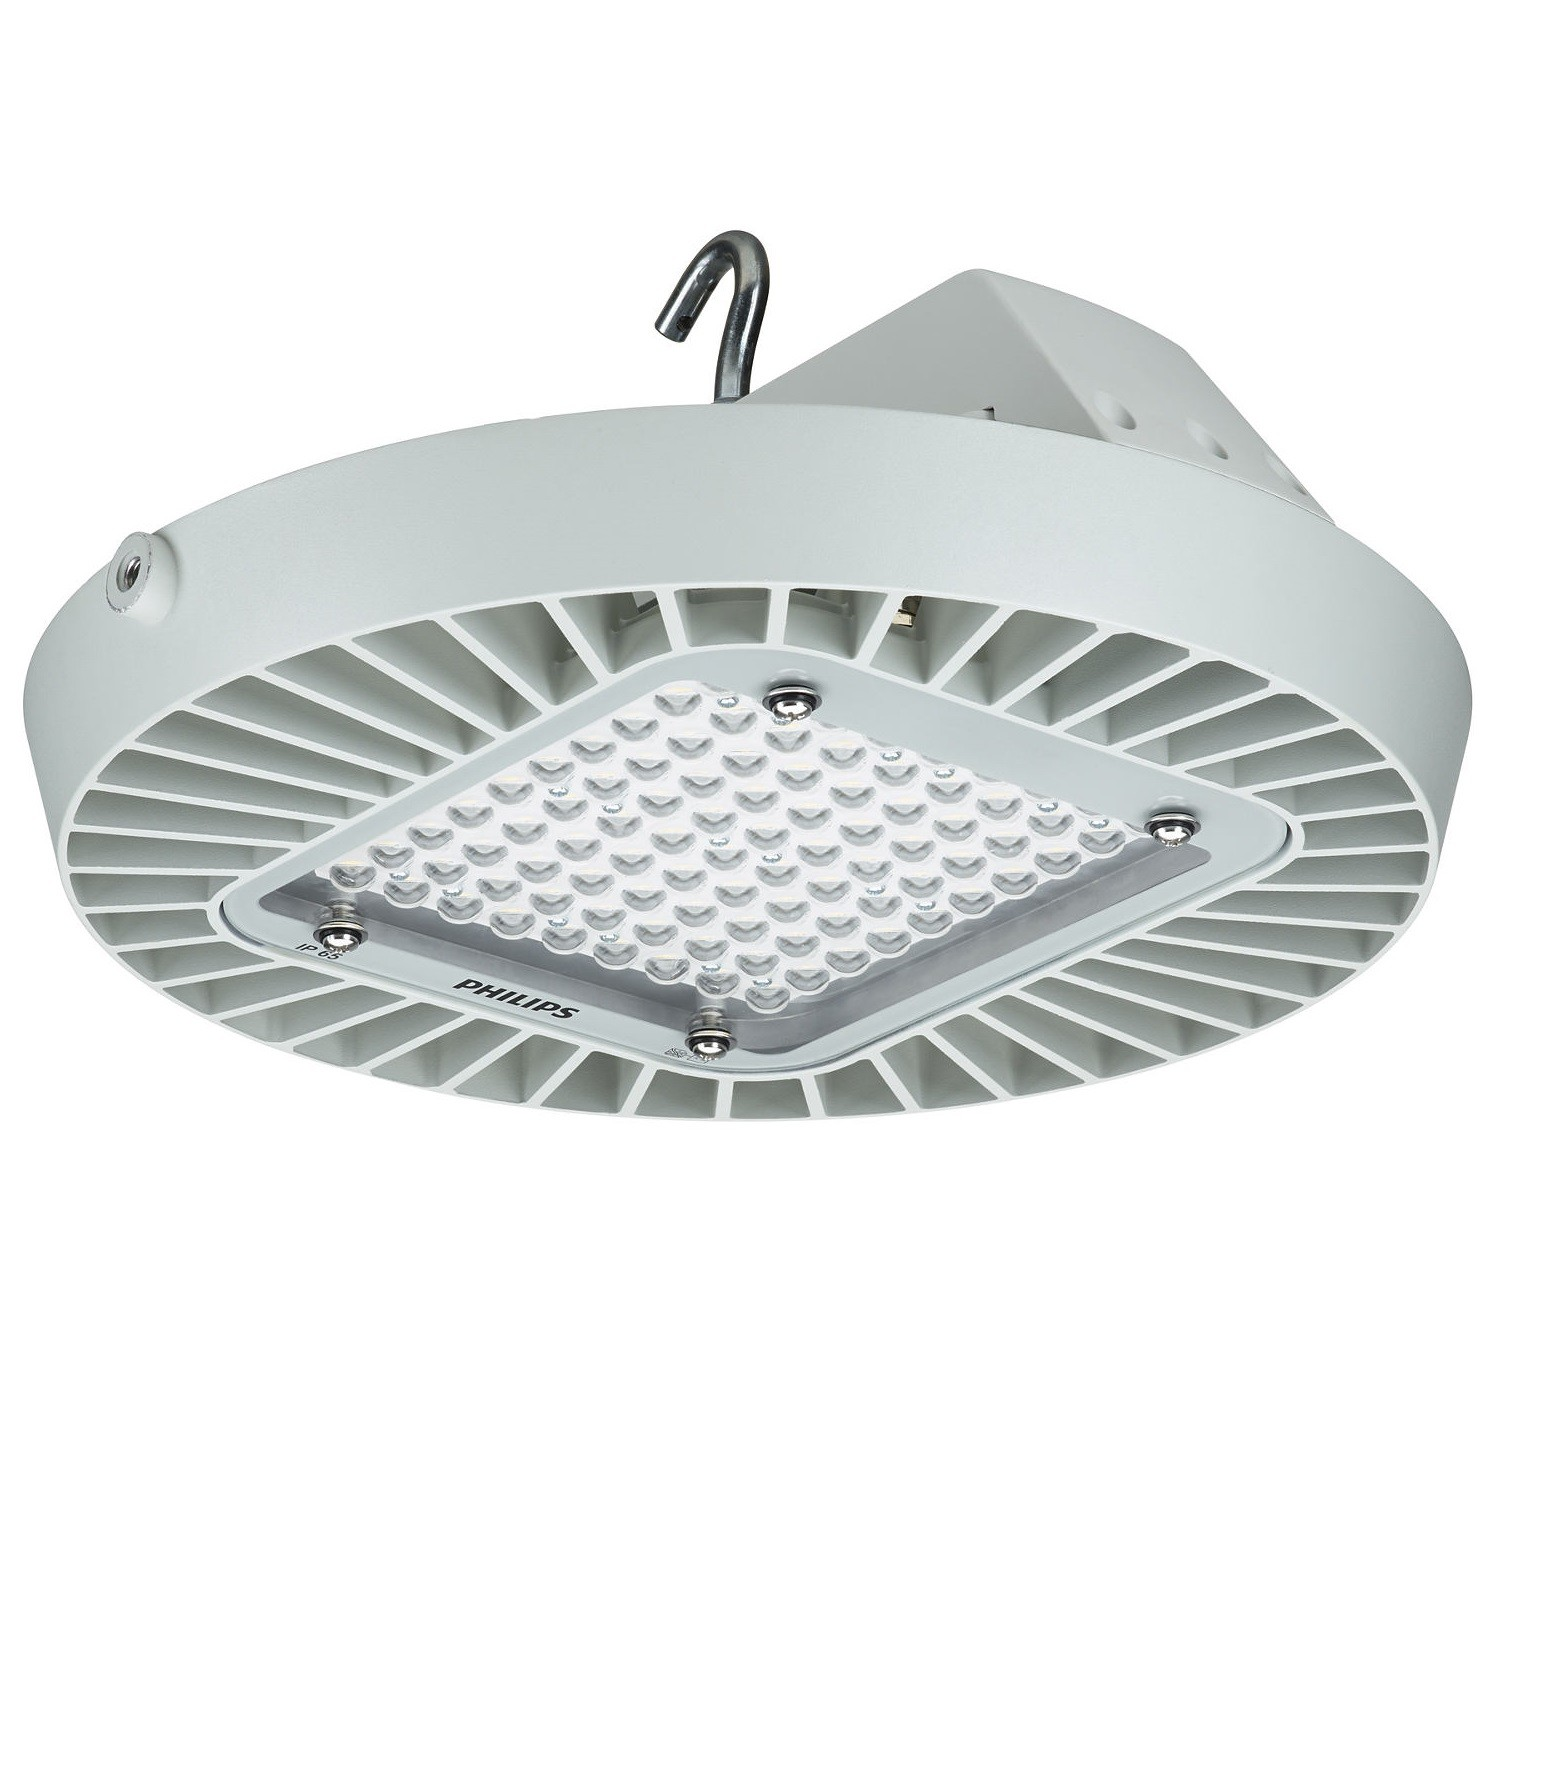 Led High Bay Hs Code: Philips BY120P G2 Coreline LED High Bay, 100W, 4000K, 10500lm